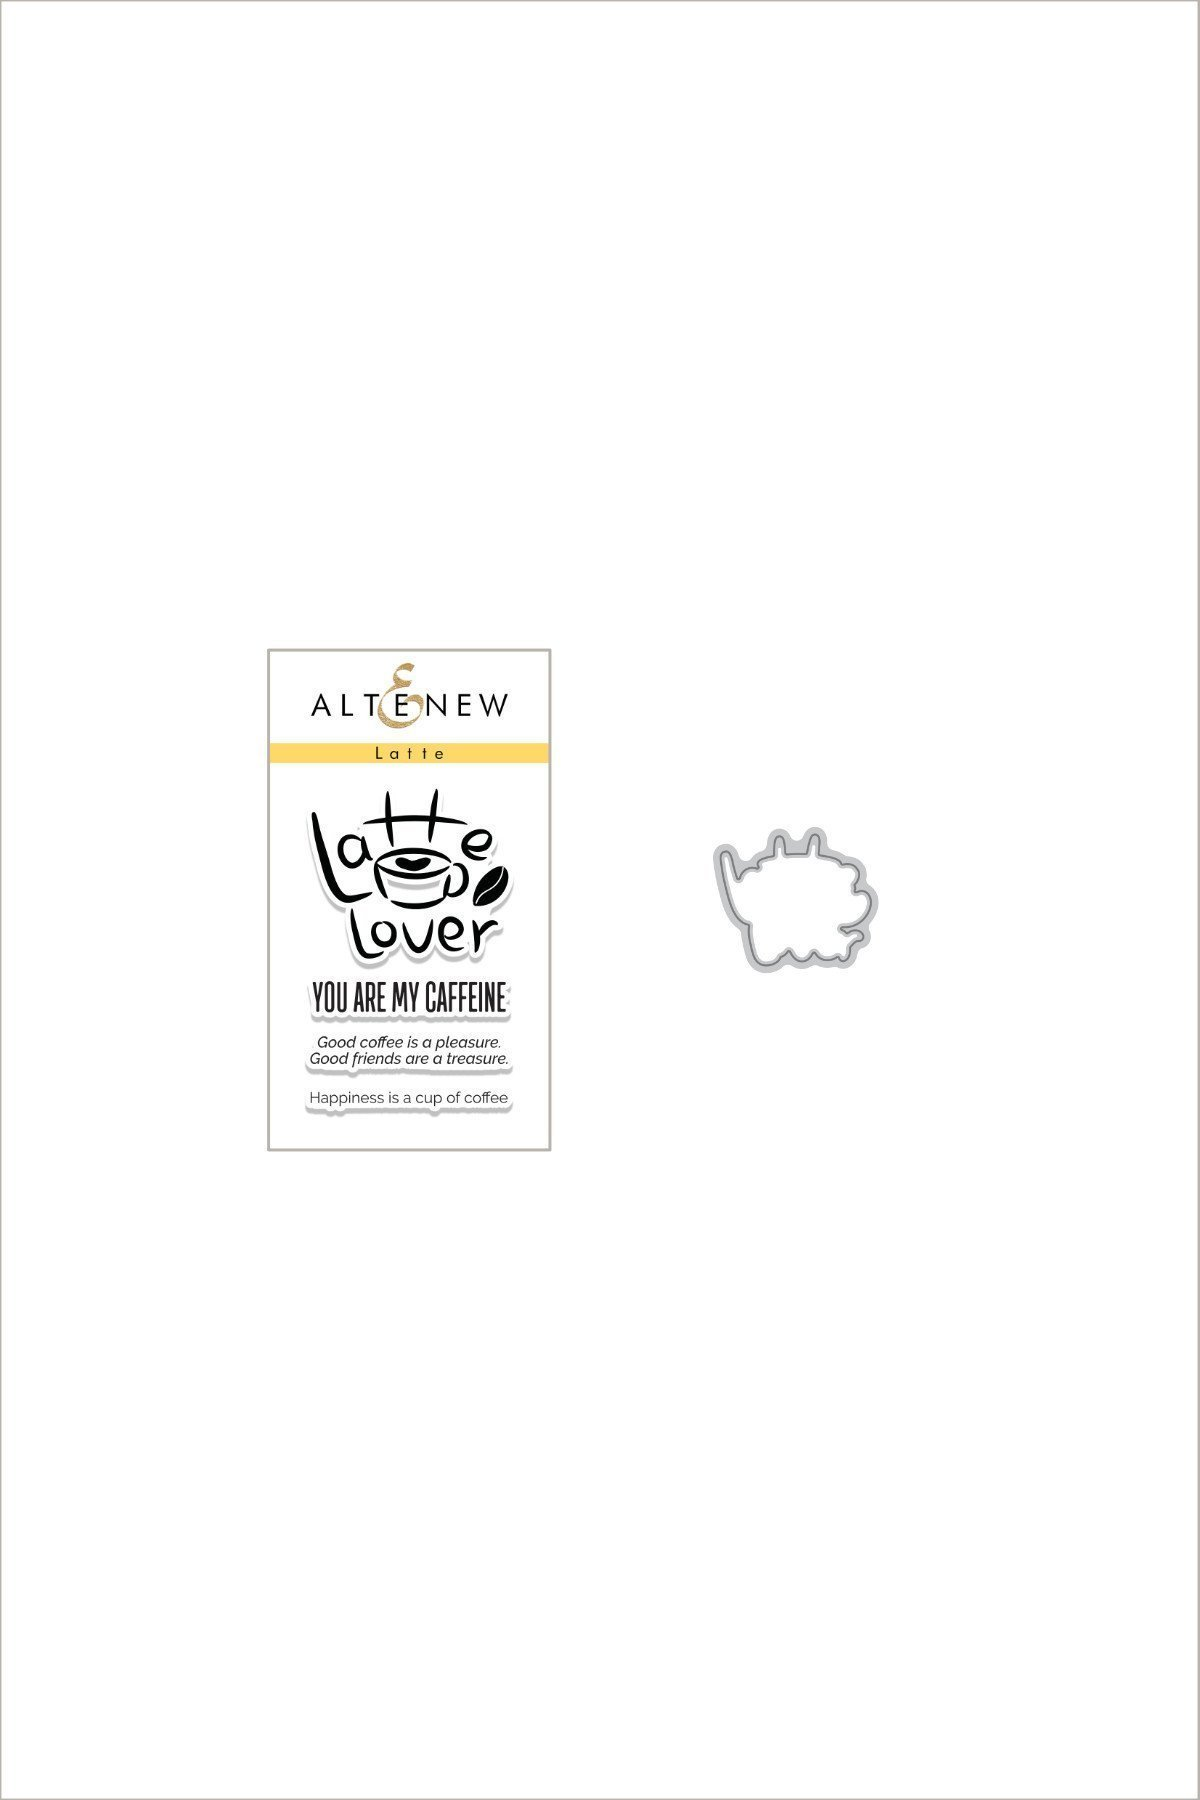 Altenew - Latte Lover Stamp & Die Bundle